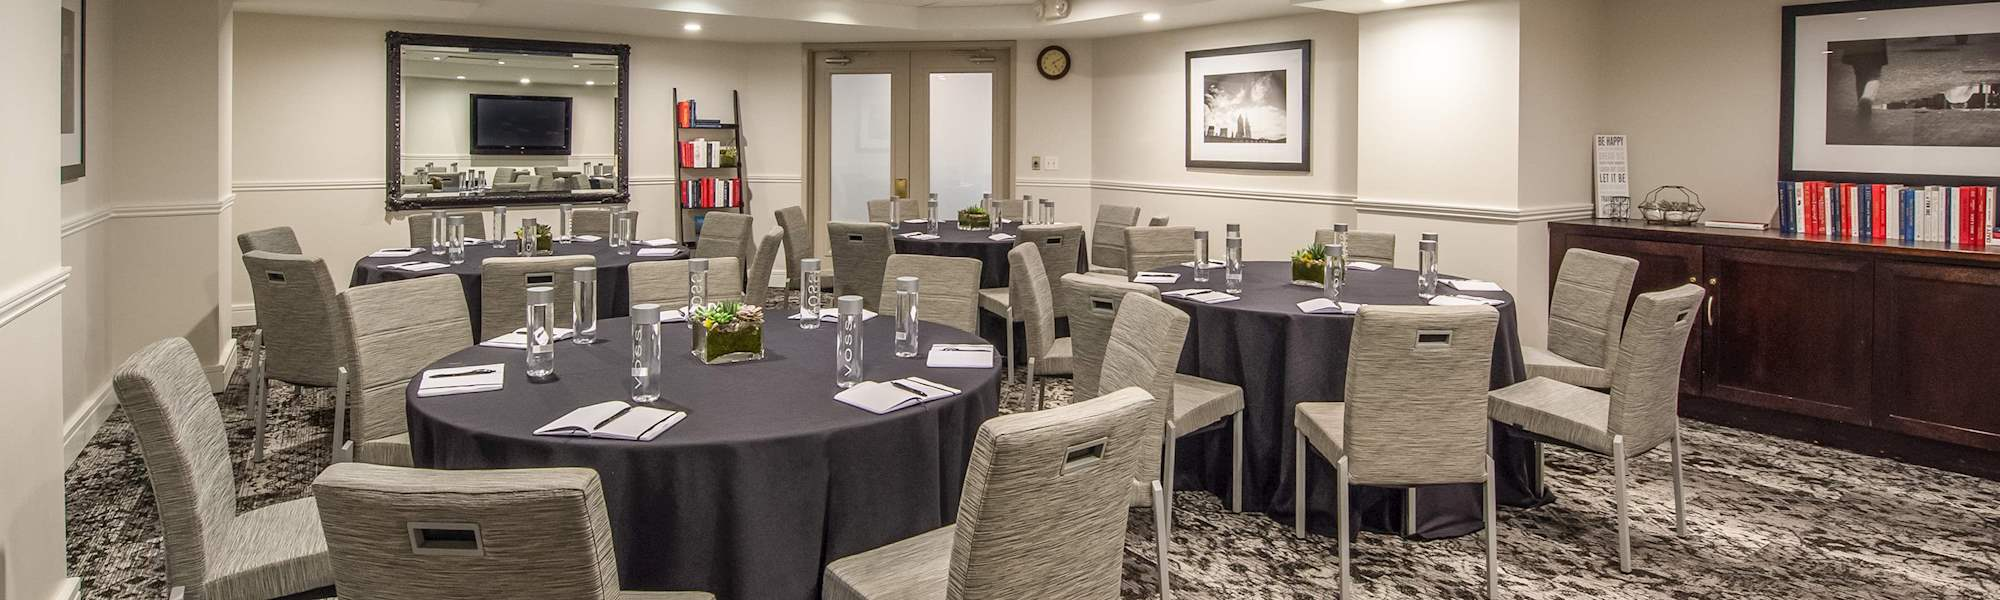 Hotel Union Square San Francisco Union Square San Francisco Meeting Event Venues King George Hotel